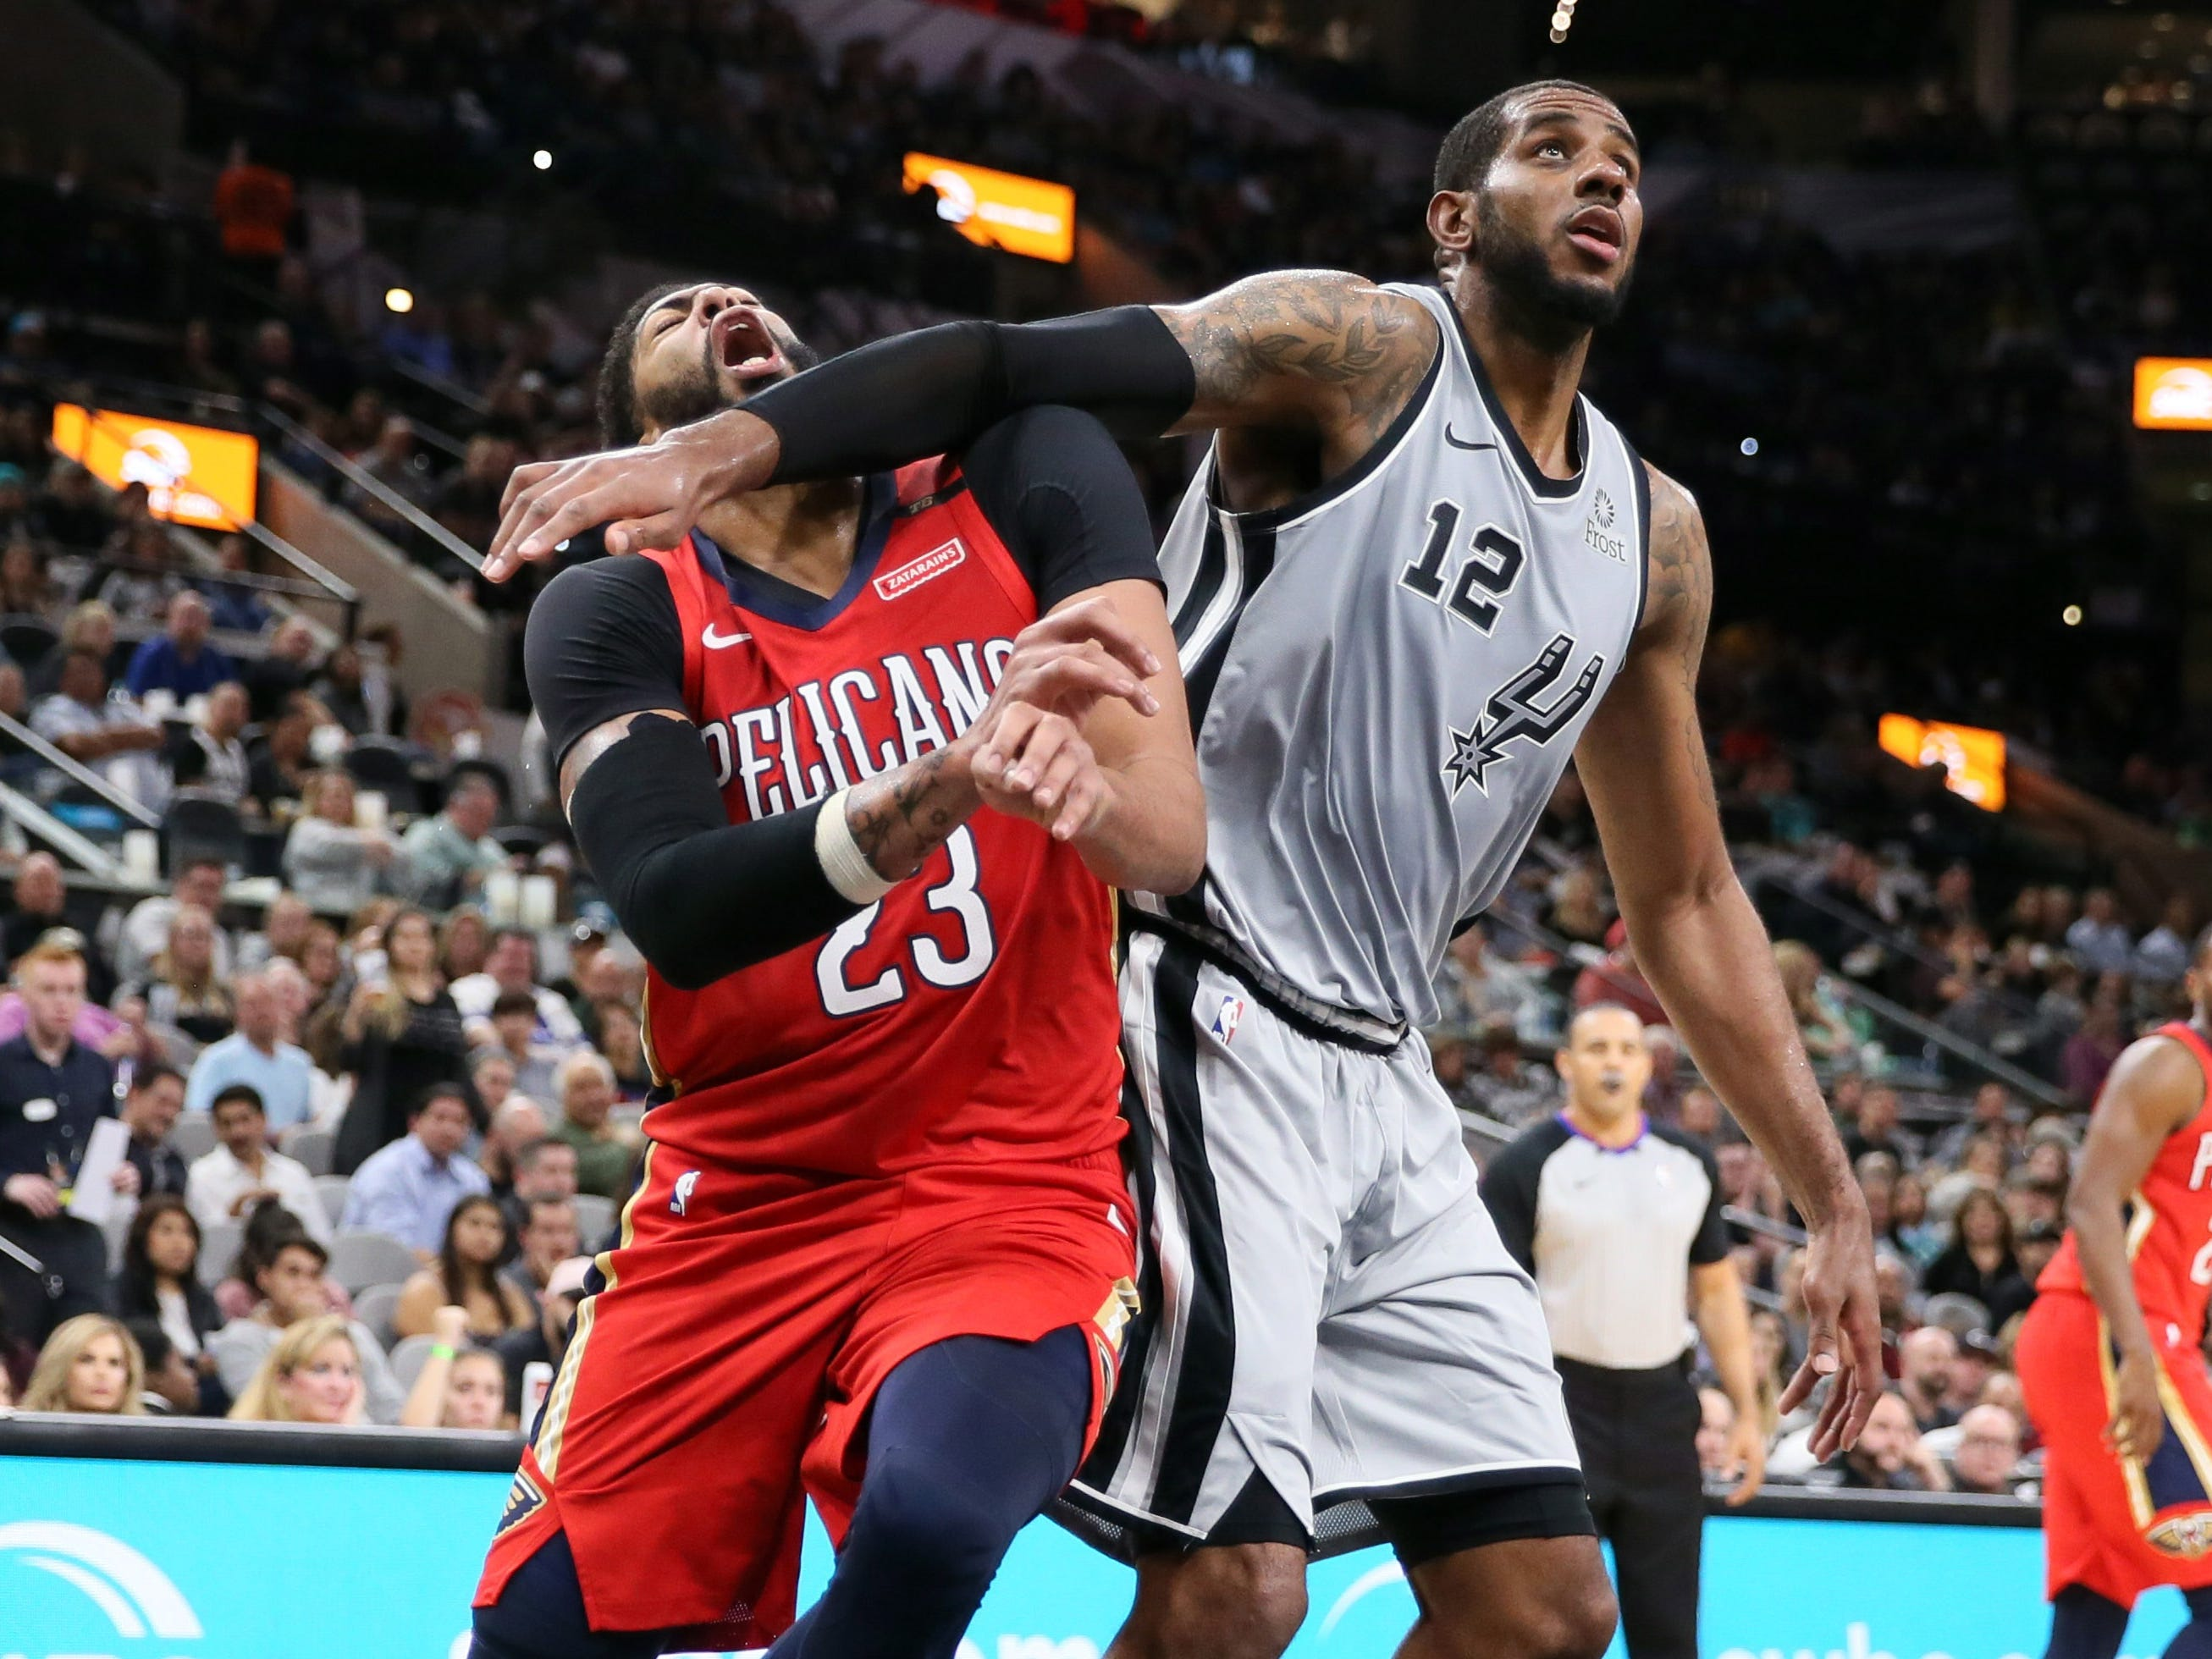 Nov. 3: Pelicans forward Anthony Davis (23) takes a forearm to the chops from Spurs forward LaMarcus Aldridge (12) as they fight for position in the paint during the second half in San Antonio.